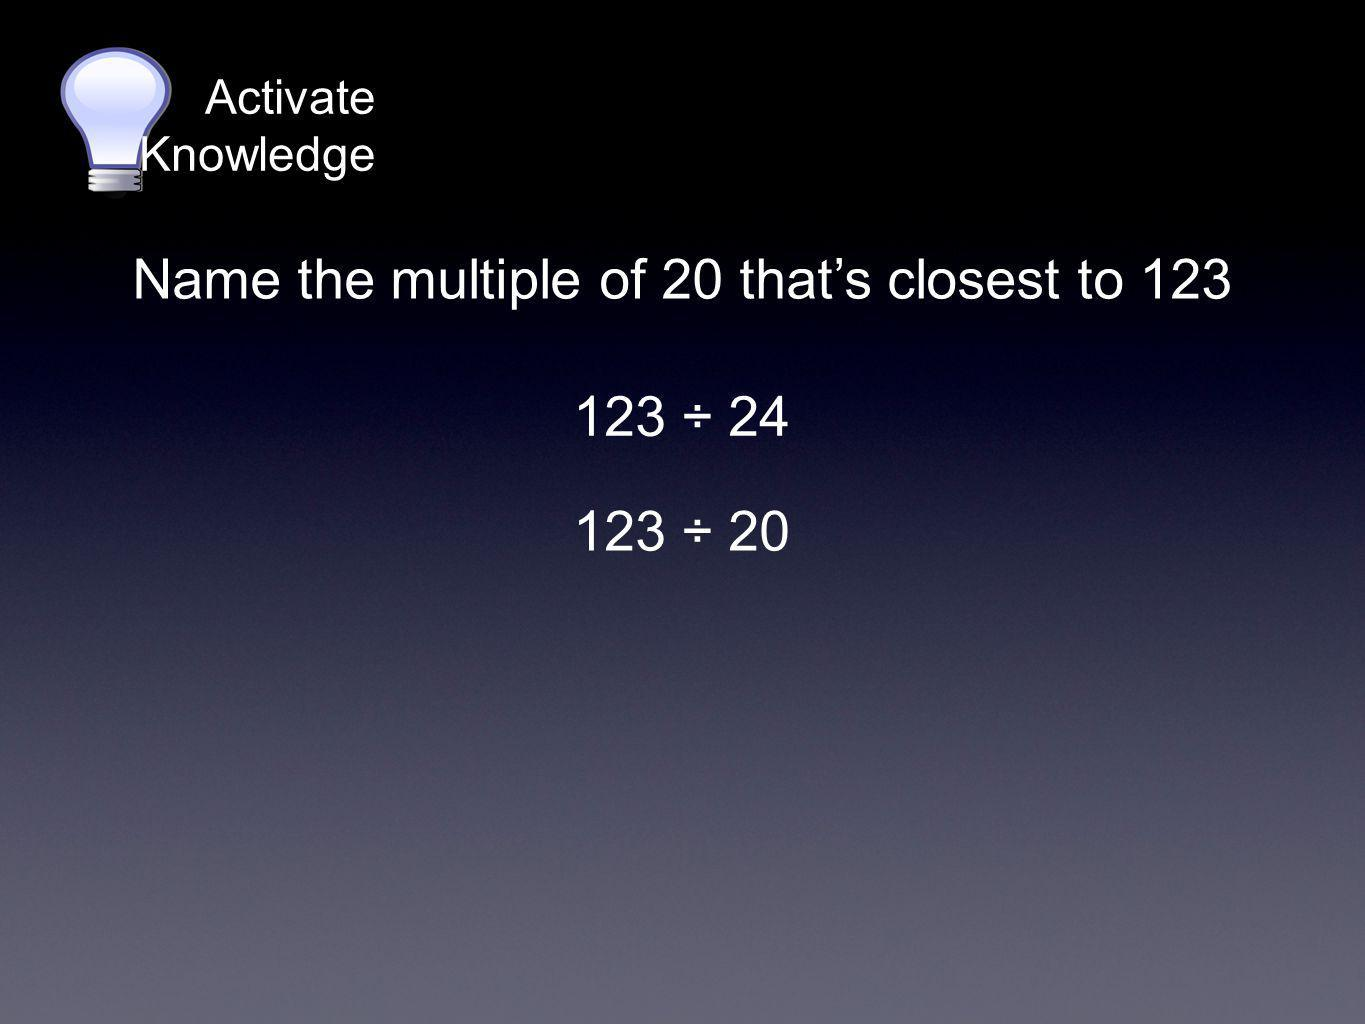 Name the multiple of 20 that's closest to 123